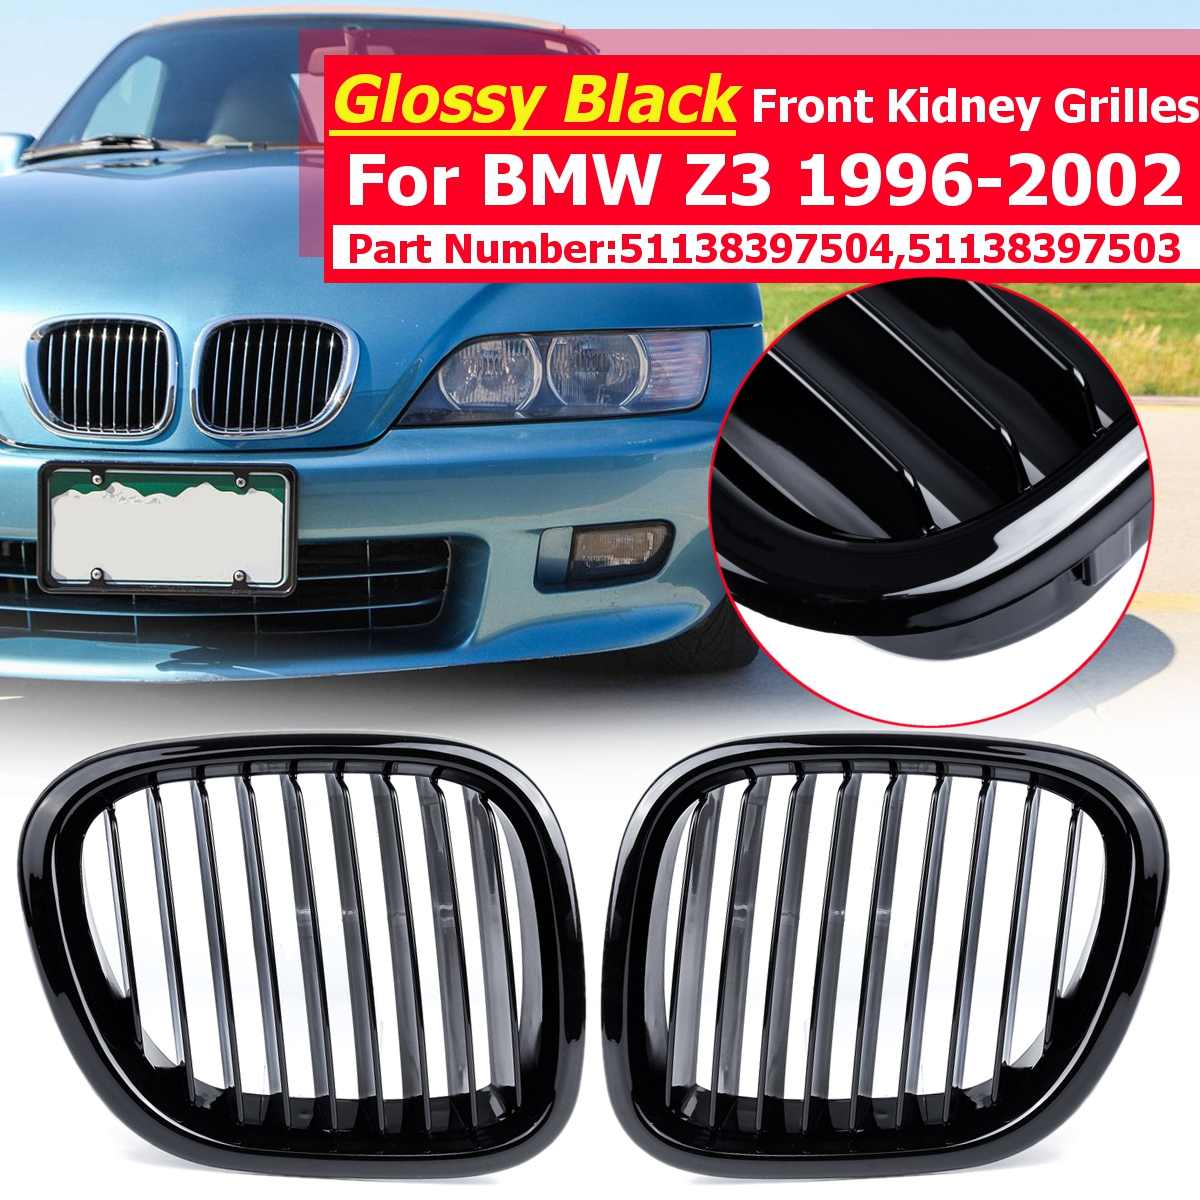 1 Pair Matte Black Left Right Car Front Kidney Grilles For Bmw Z3 1996 1997 1998 1999 2000 2001 2002 Replacement Racing Grilles Racing Grills Aliexpress